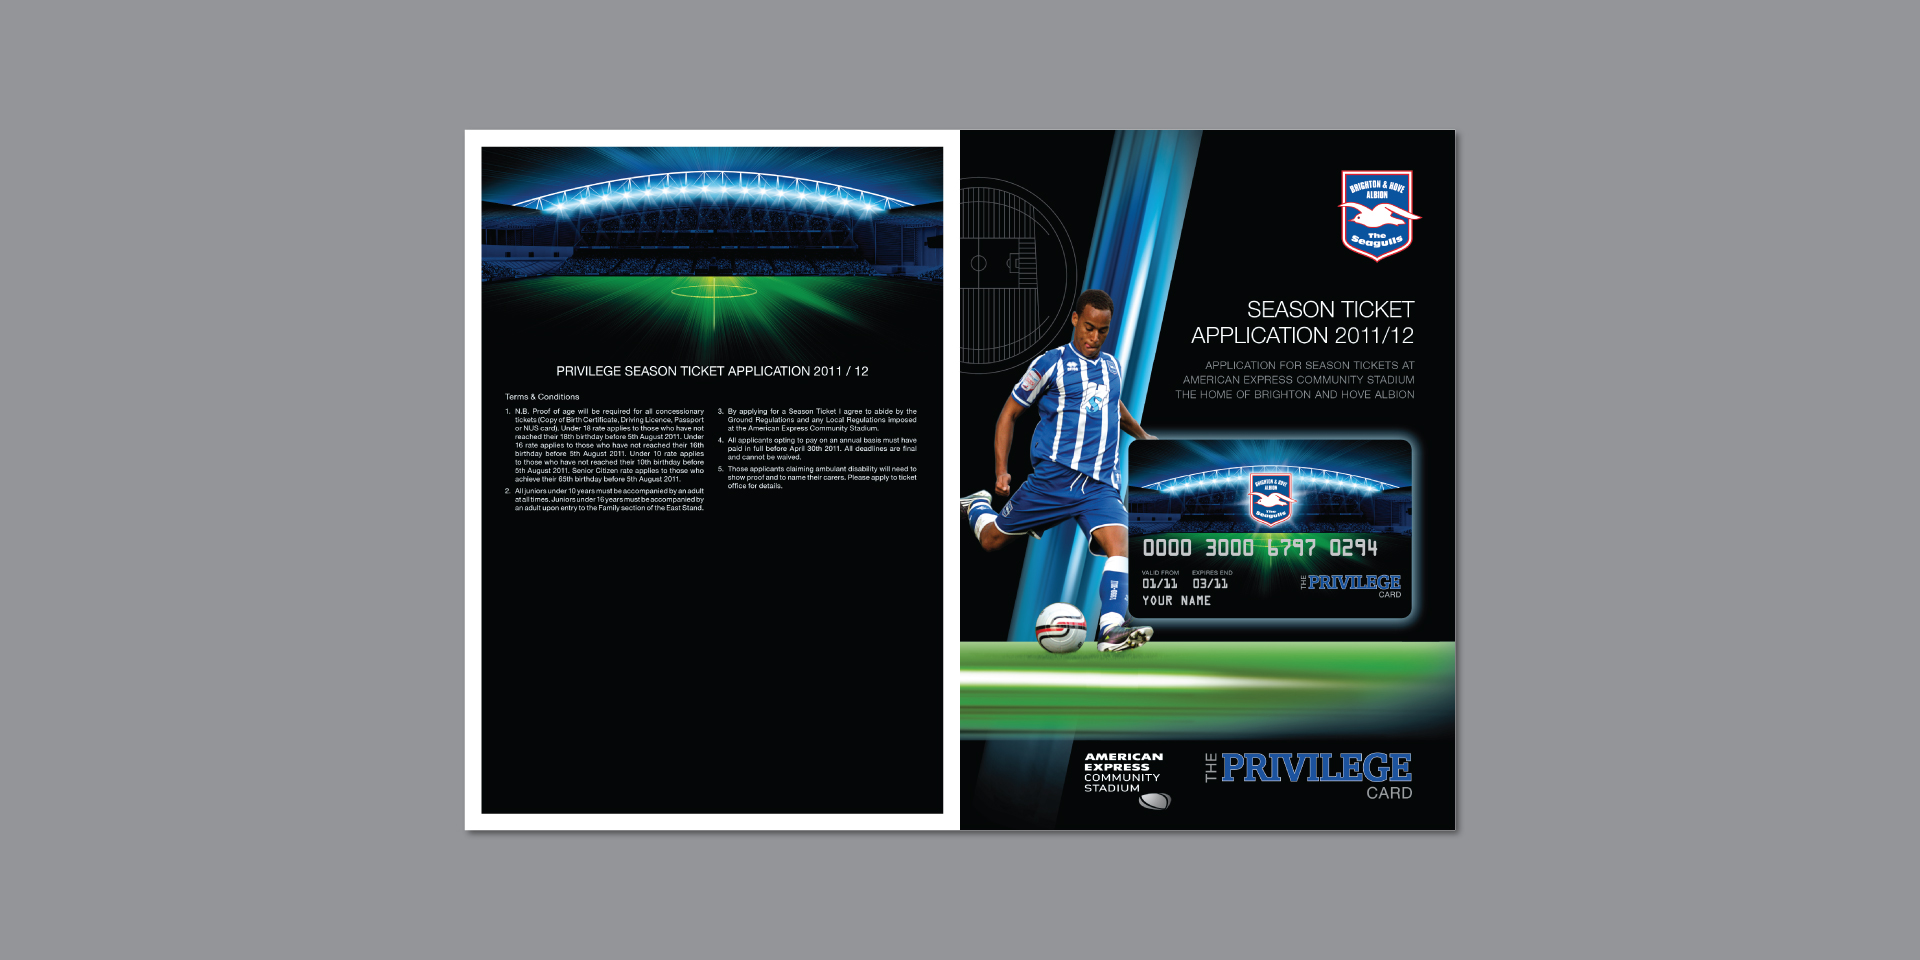 B009-2066-Brighton-and-Hove-Albion-imagery-Wide-3.jpg